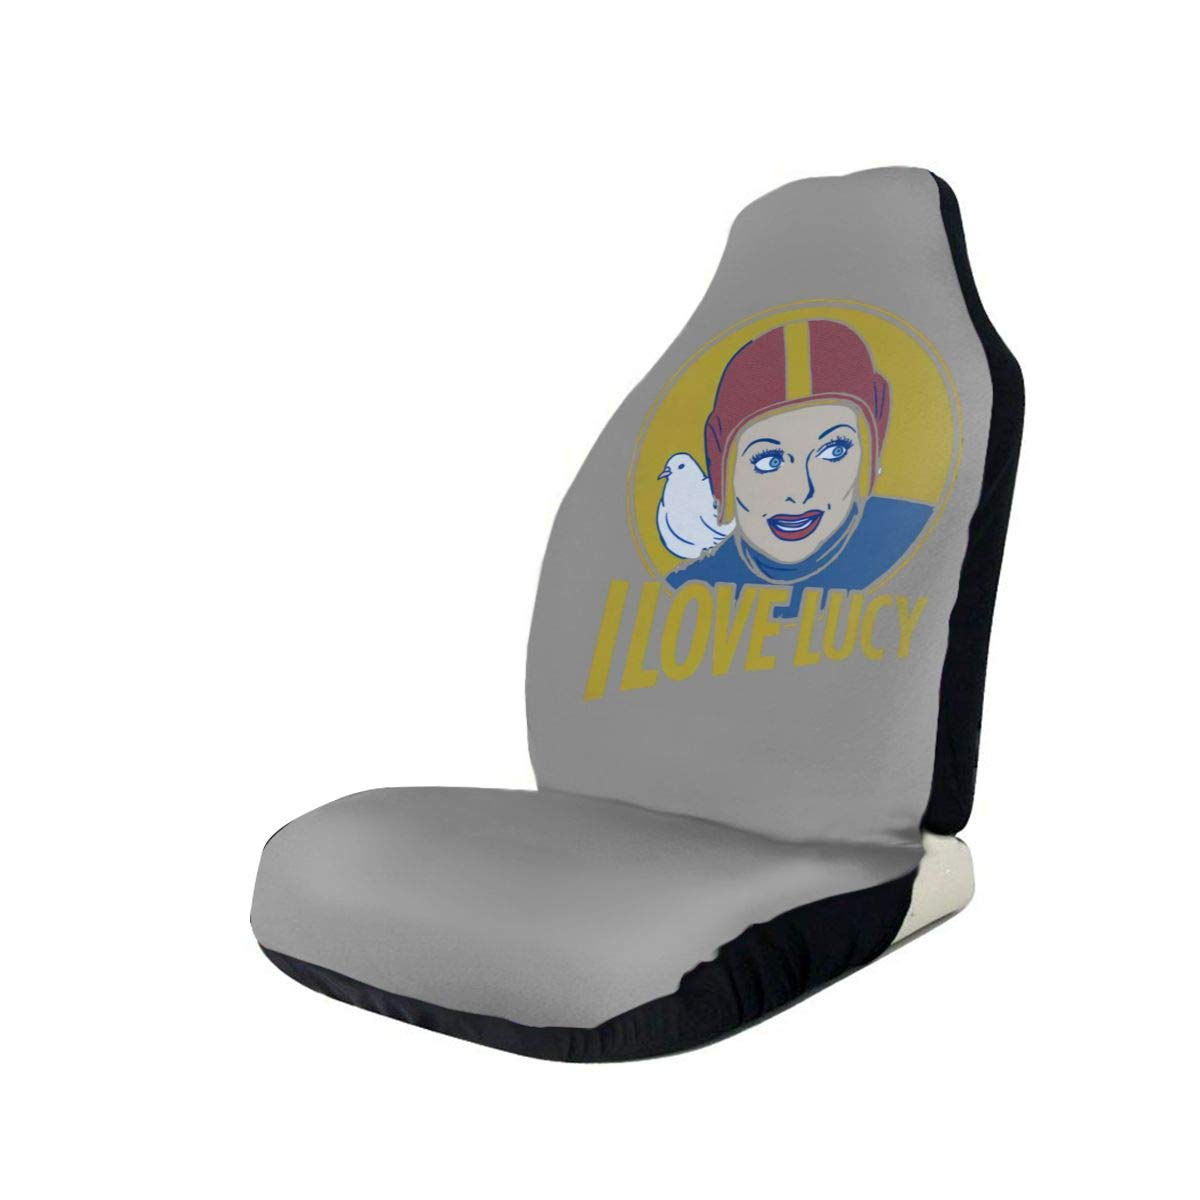 I Love Lucy Tv Show Car Seat Covers Car Seat Protector Covers ,Fit Most Cars, Sedan, SUV,Van